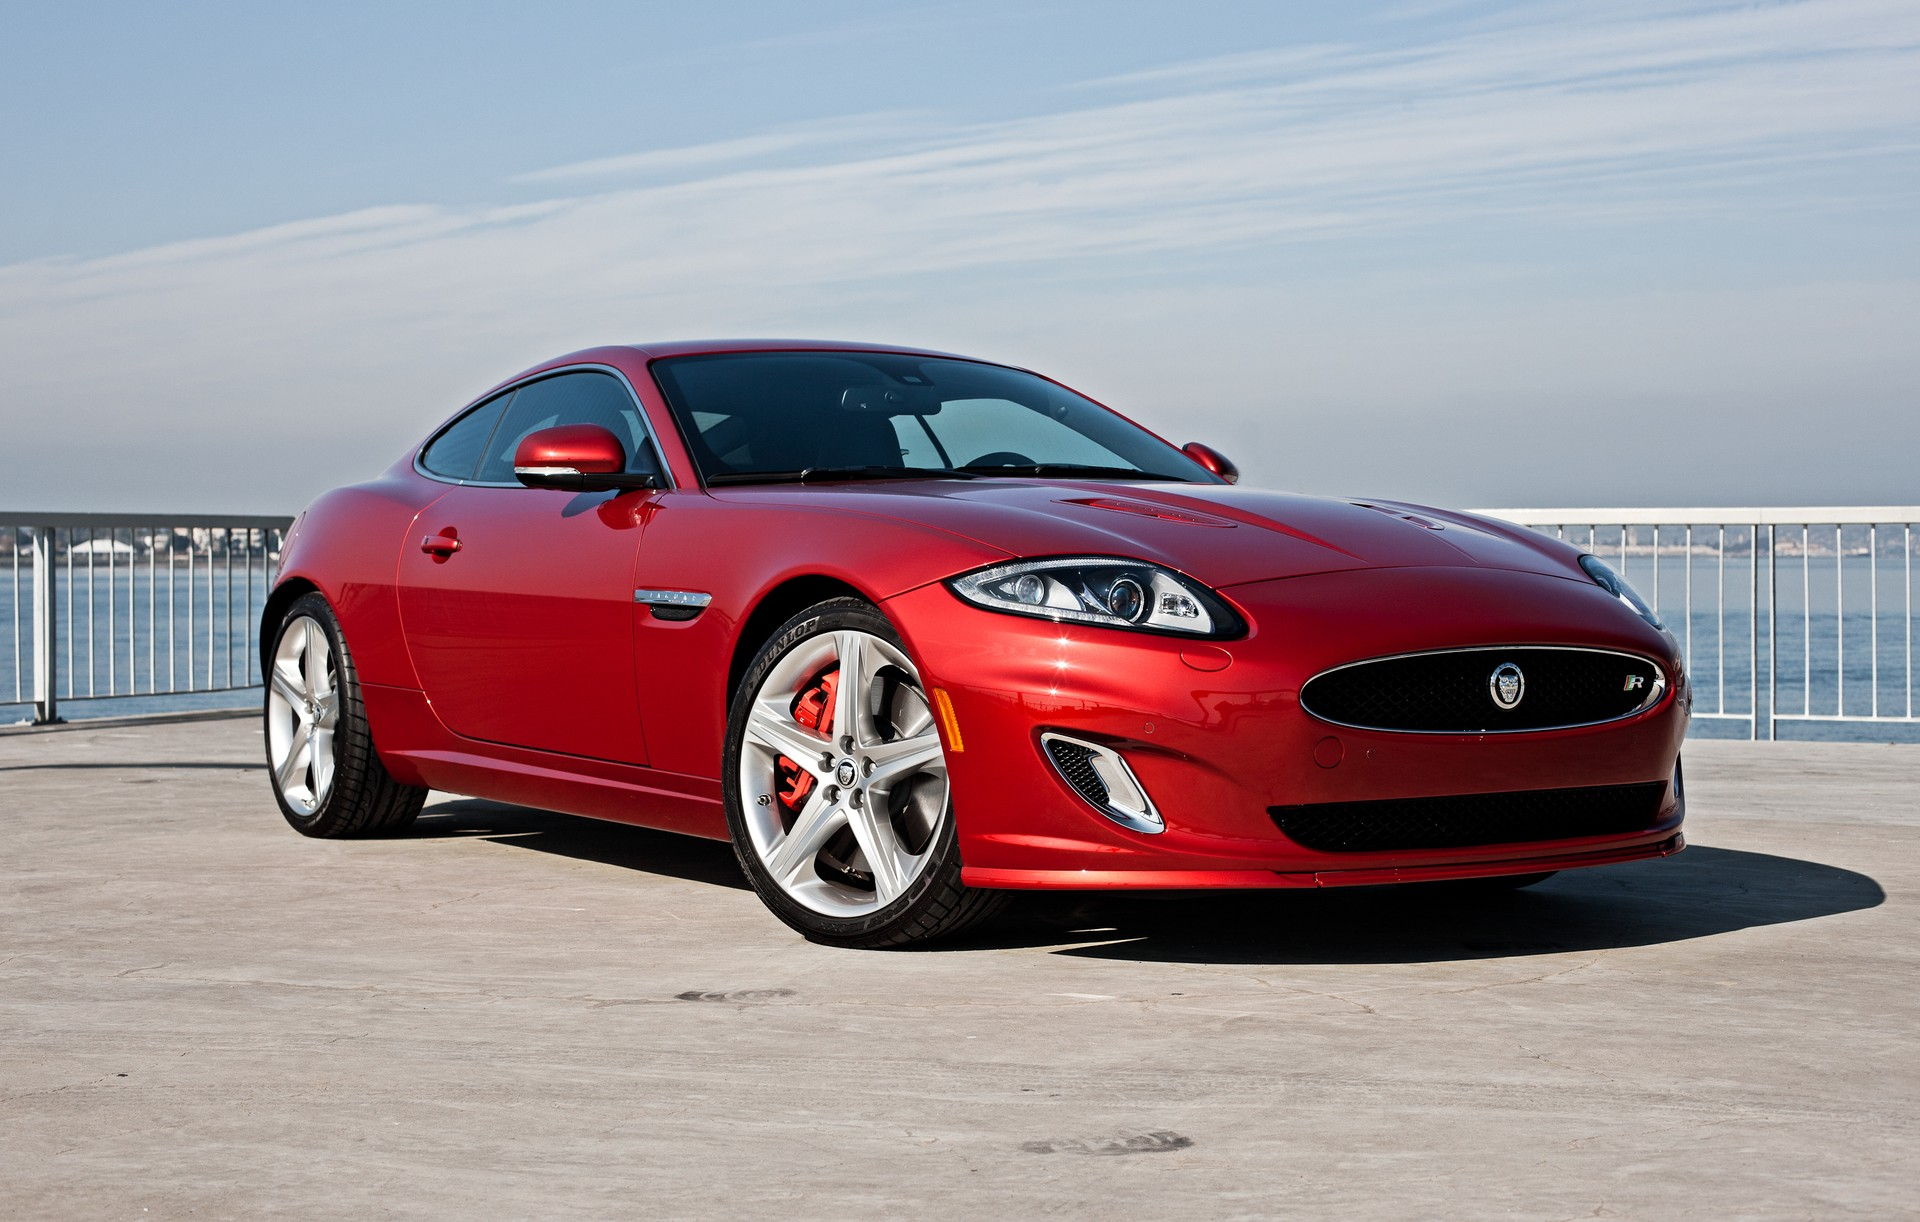 southwest img owned classifieds certified jaguar xk fs for forum used private pre sale buy xkr s trade